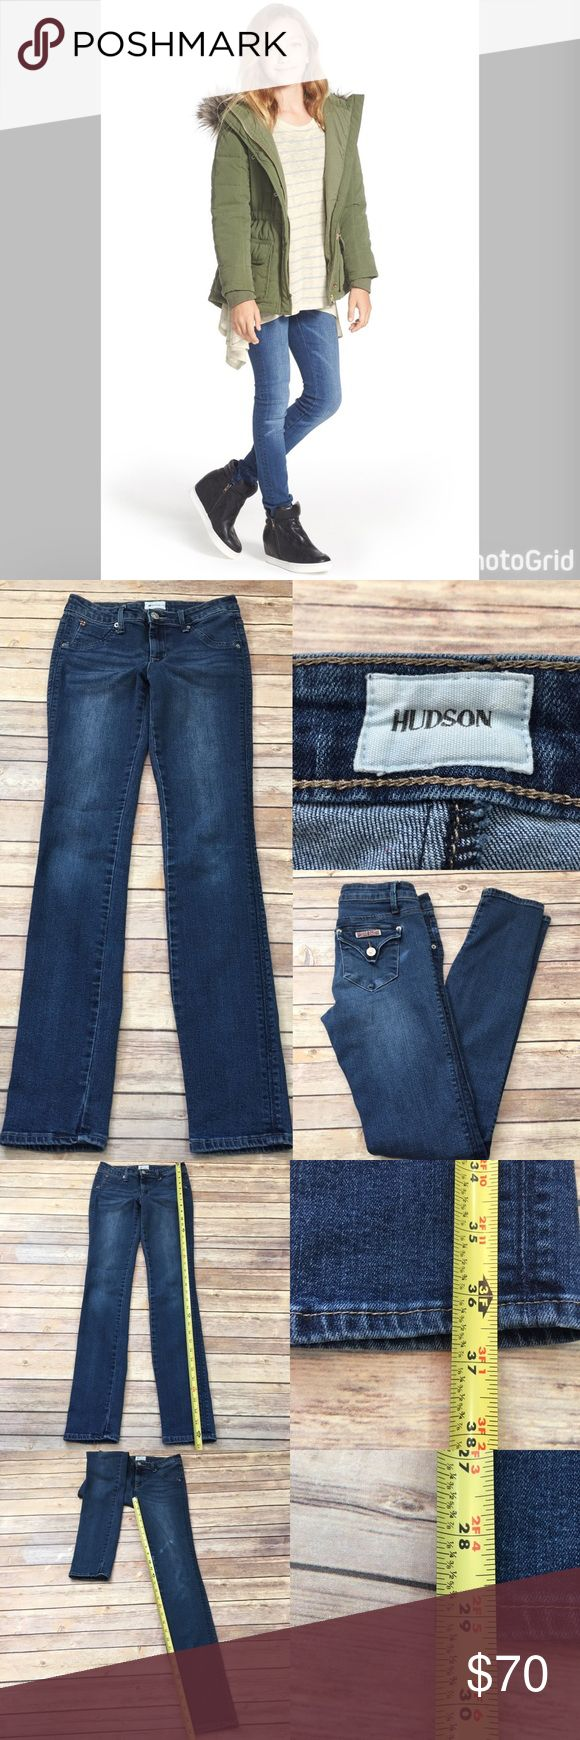 🎀Sz 16 Hudson Big Girls Stretch Skinny Jeans Measurements are in photos. Normal wash wear, no flaws B1 ** youth sizes, has faux front pockets. I do not comment to my buyers after purchases, due to their privacy. If you would like any reassurance after your purchase that I did receive your order, please feel free to comment on the listing and I will promptly respond. I ship everyday and I always package safely. Thanks! Hudson Jeans Bottoms Jeans